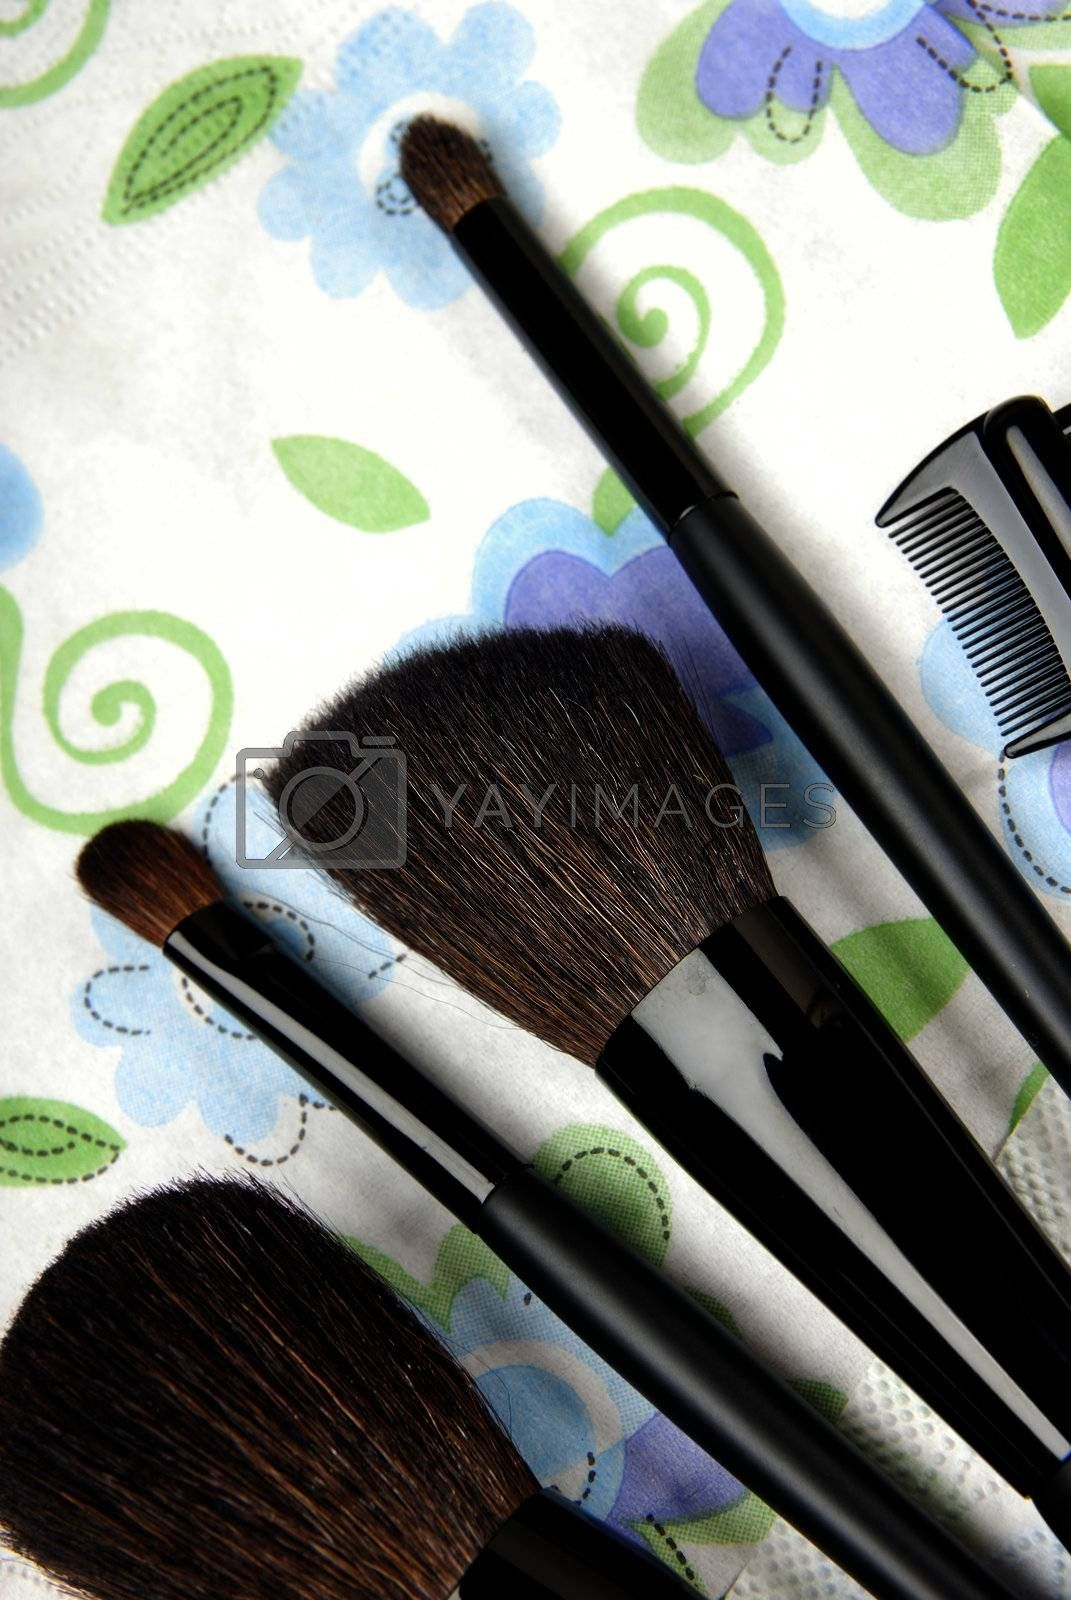 Close-up photo of five make-up brushes on a colorful background